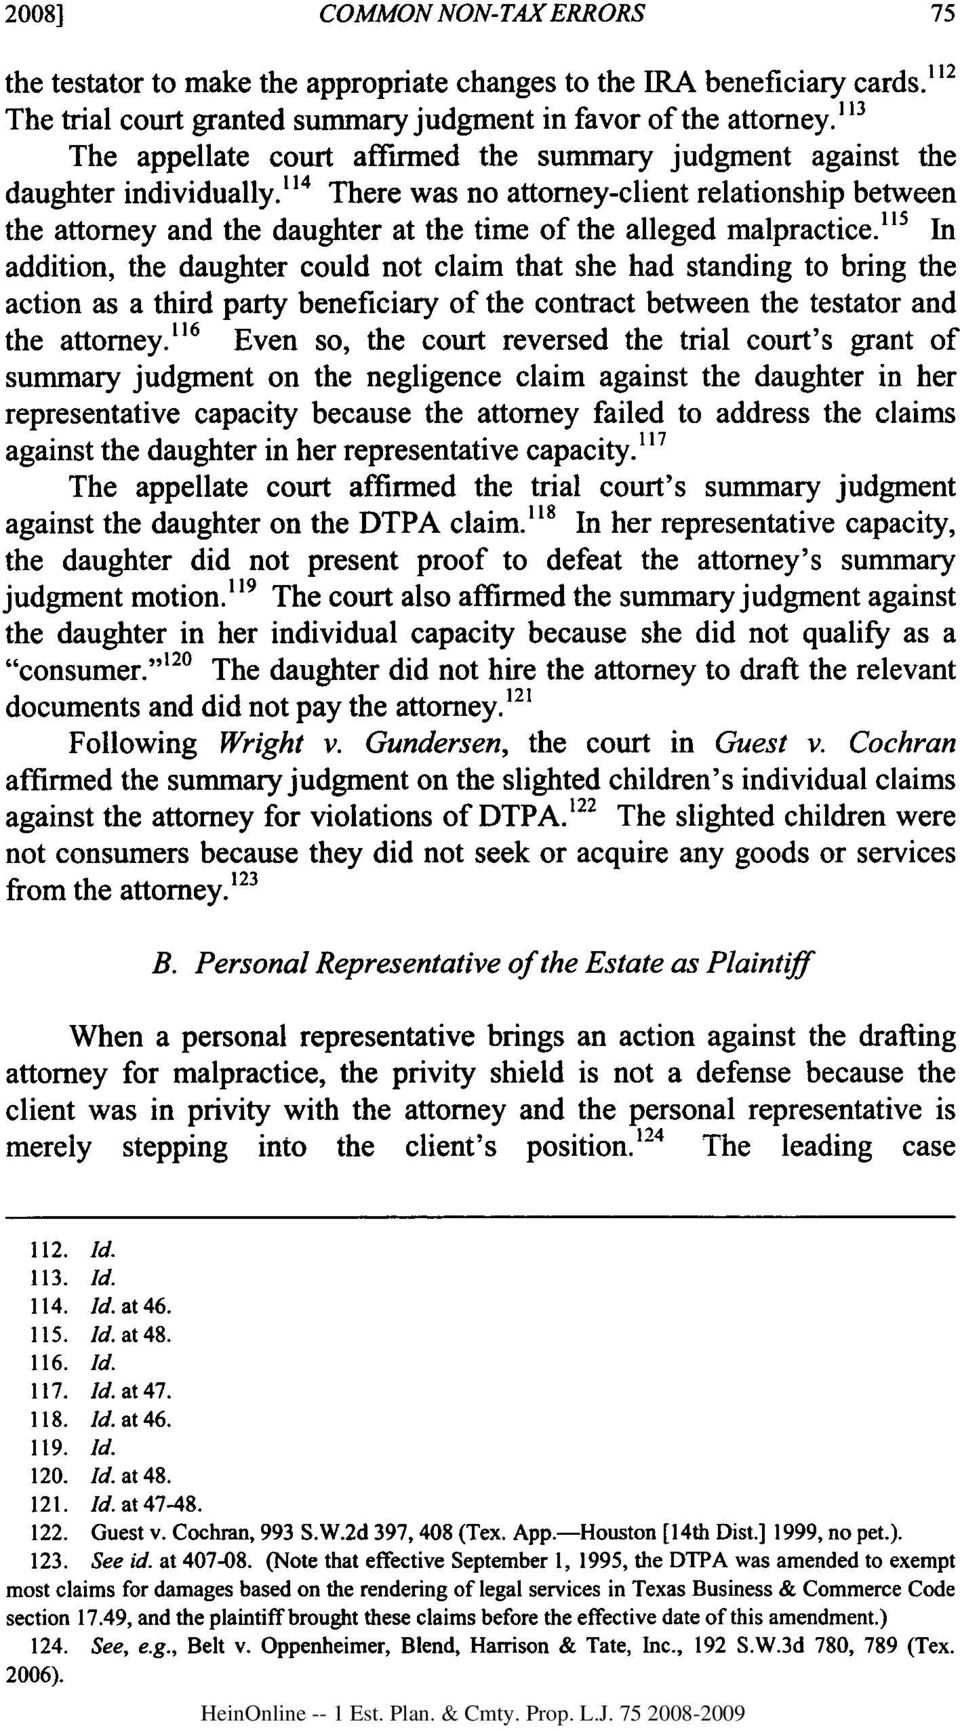 1 4 There was no attorney-client relationship between the attorney and the daughter at the time of the alleged malpractice.